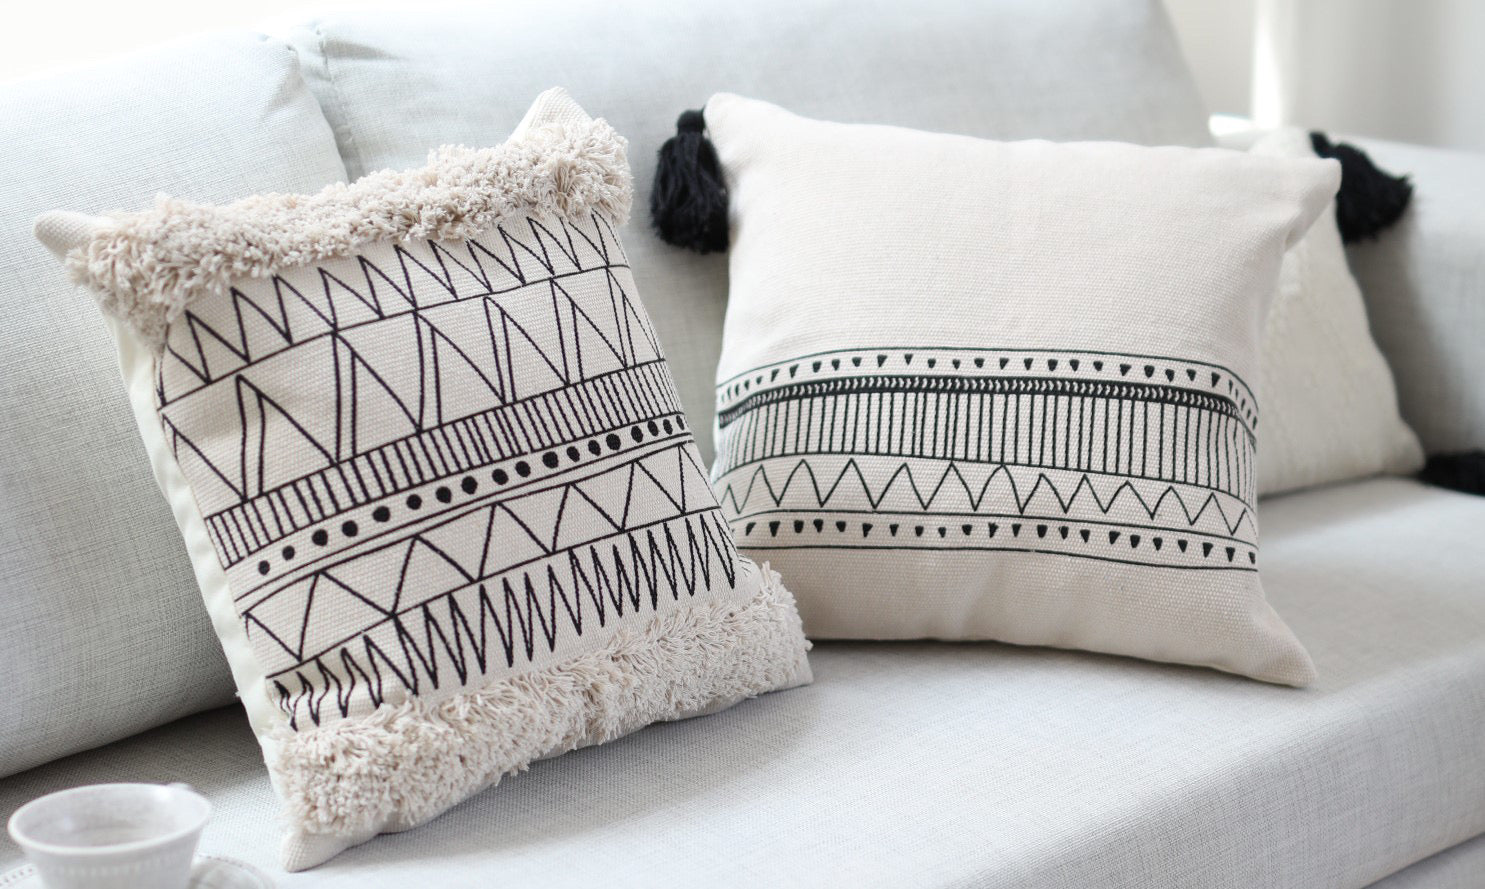 Tassled Pattern Cotton Pillow Cover